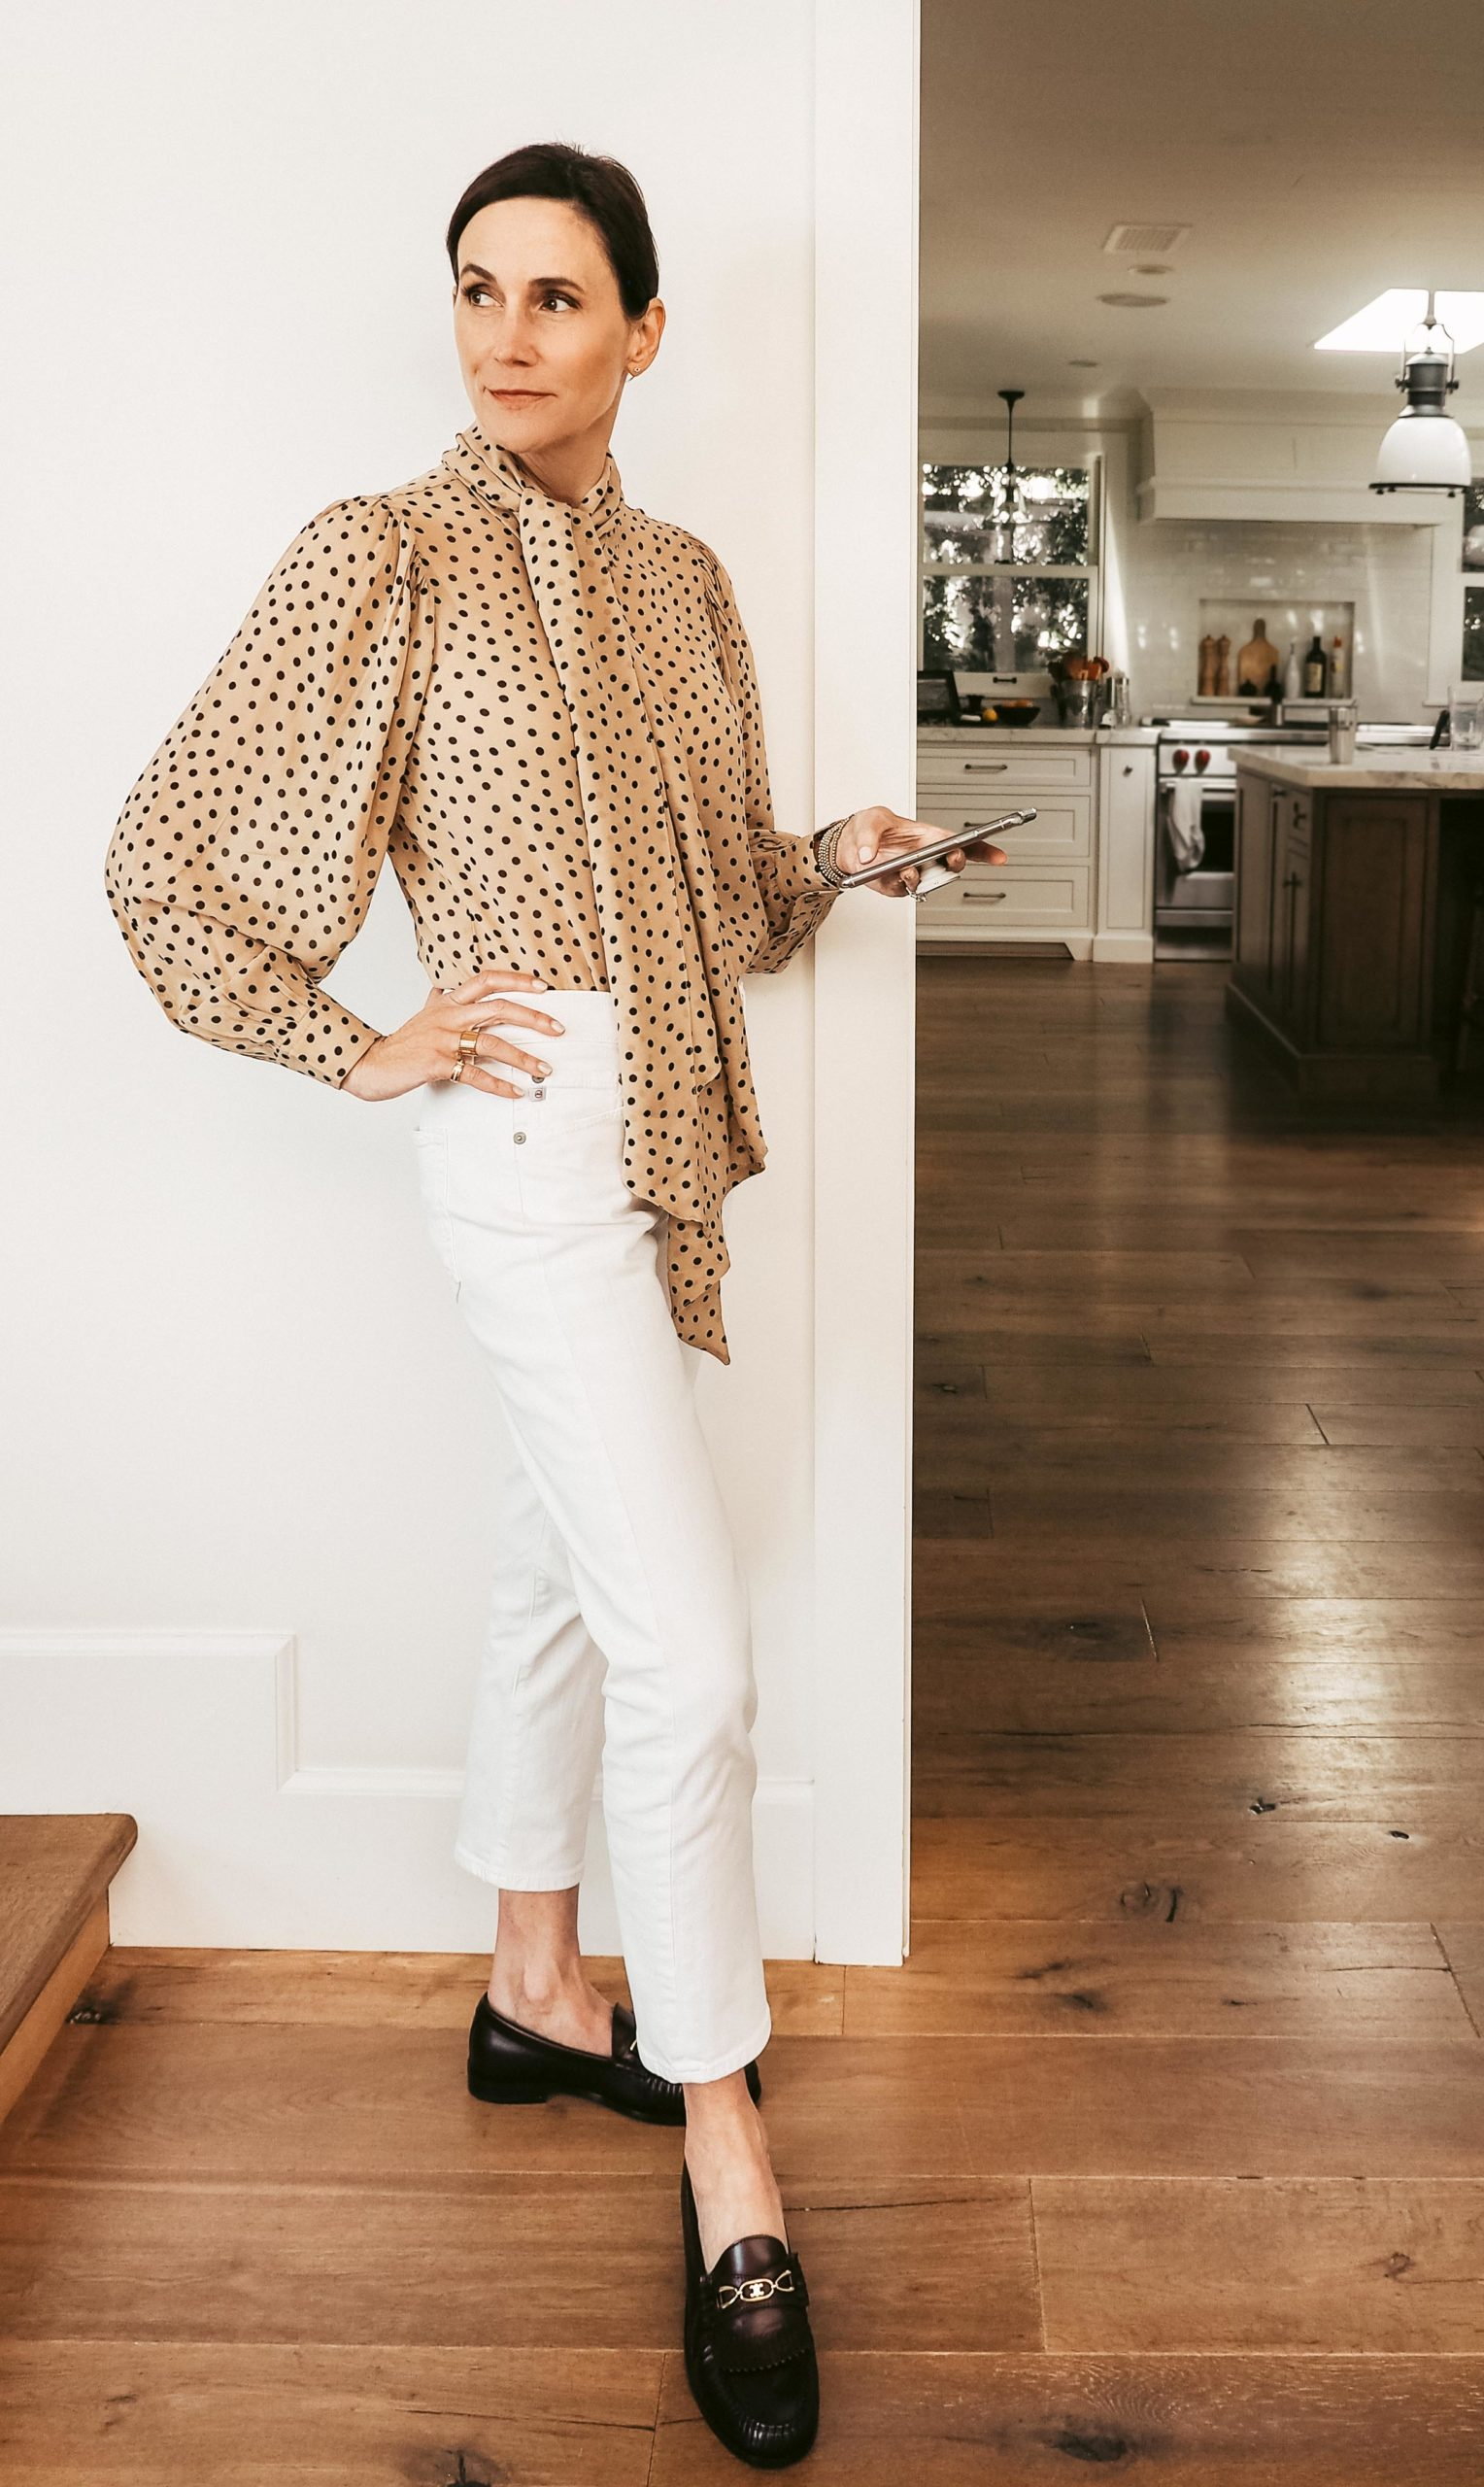 NOT YOUR BASIC BLOUSE AND SWEATER